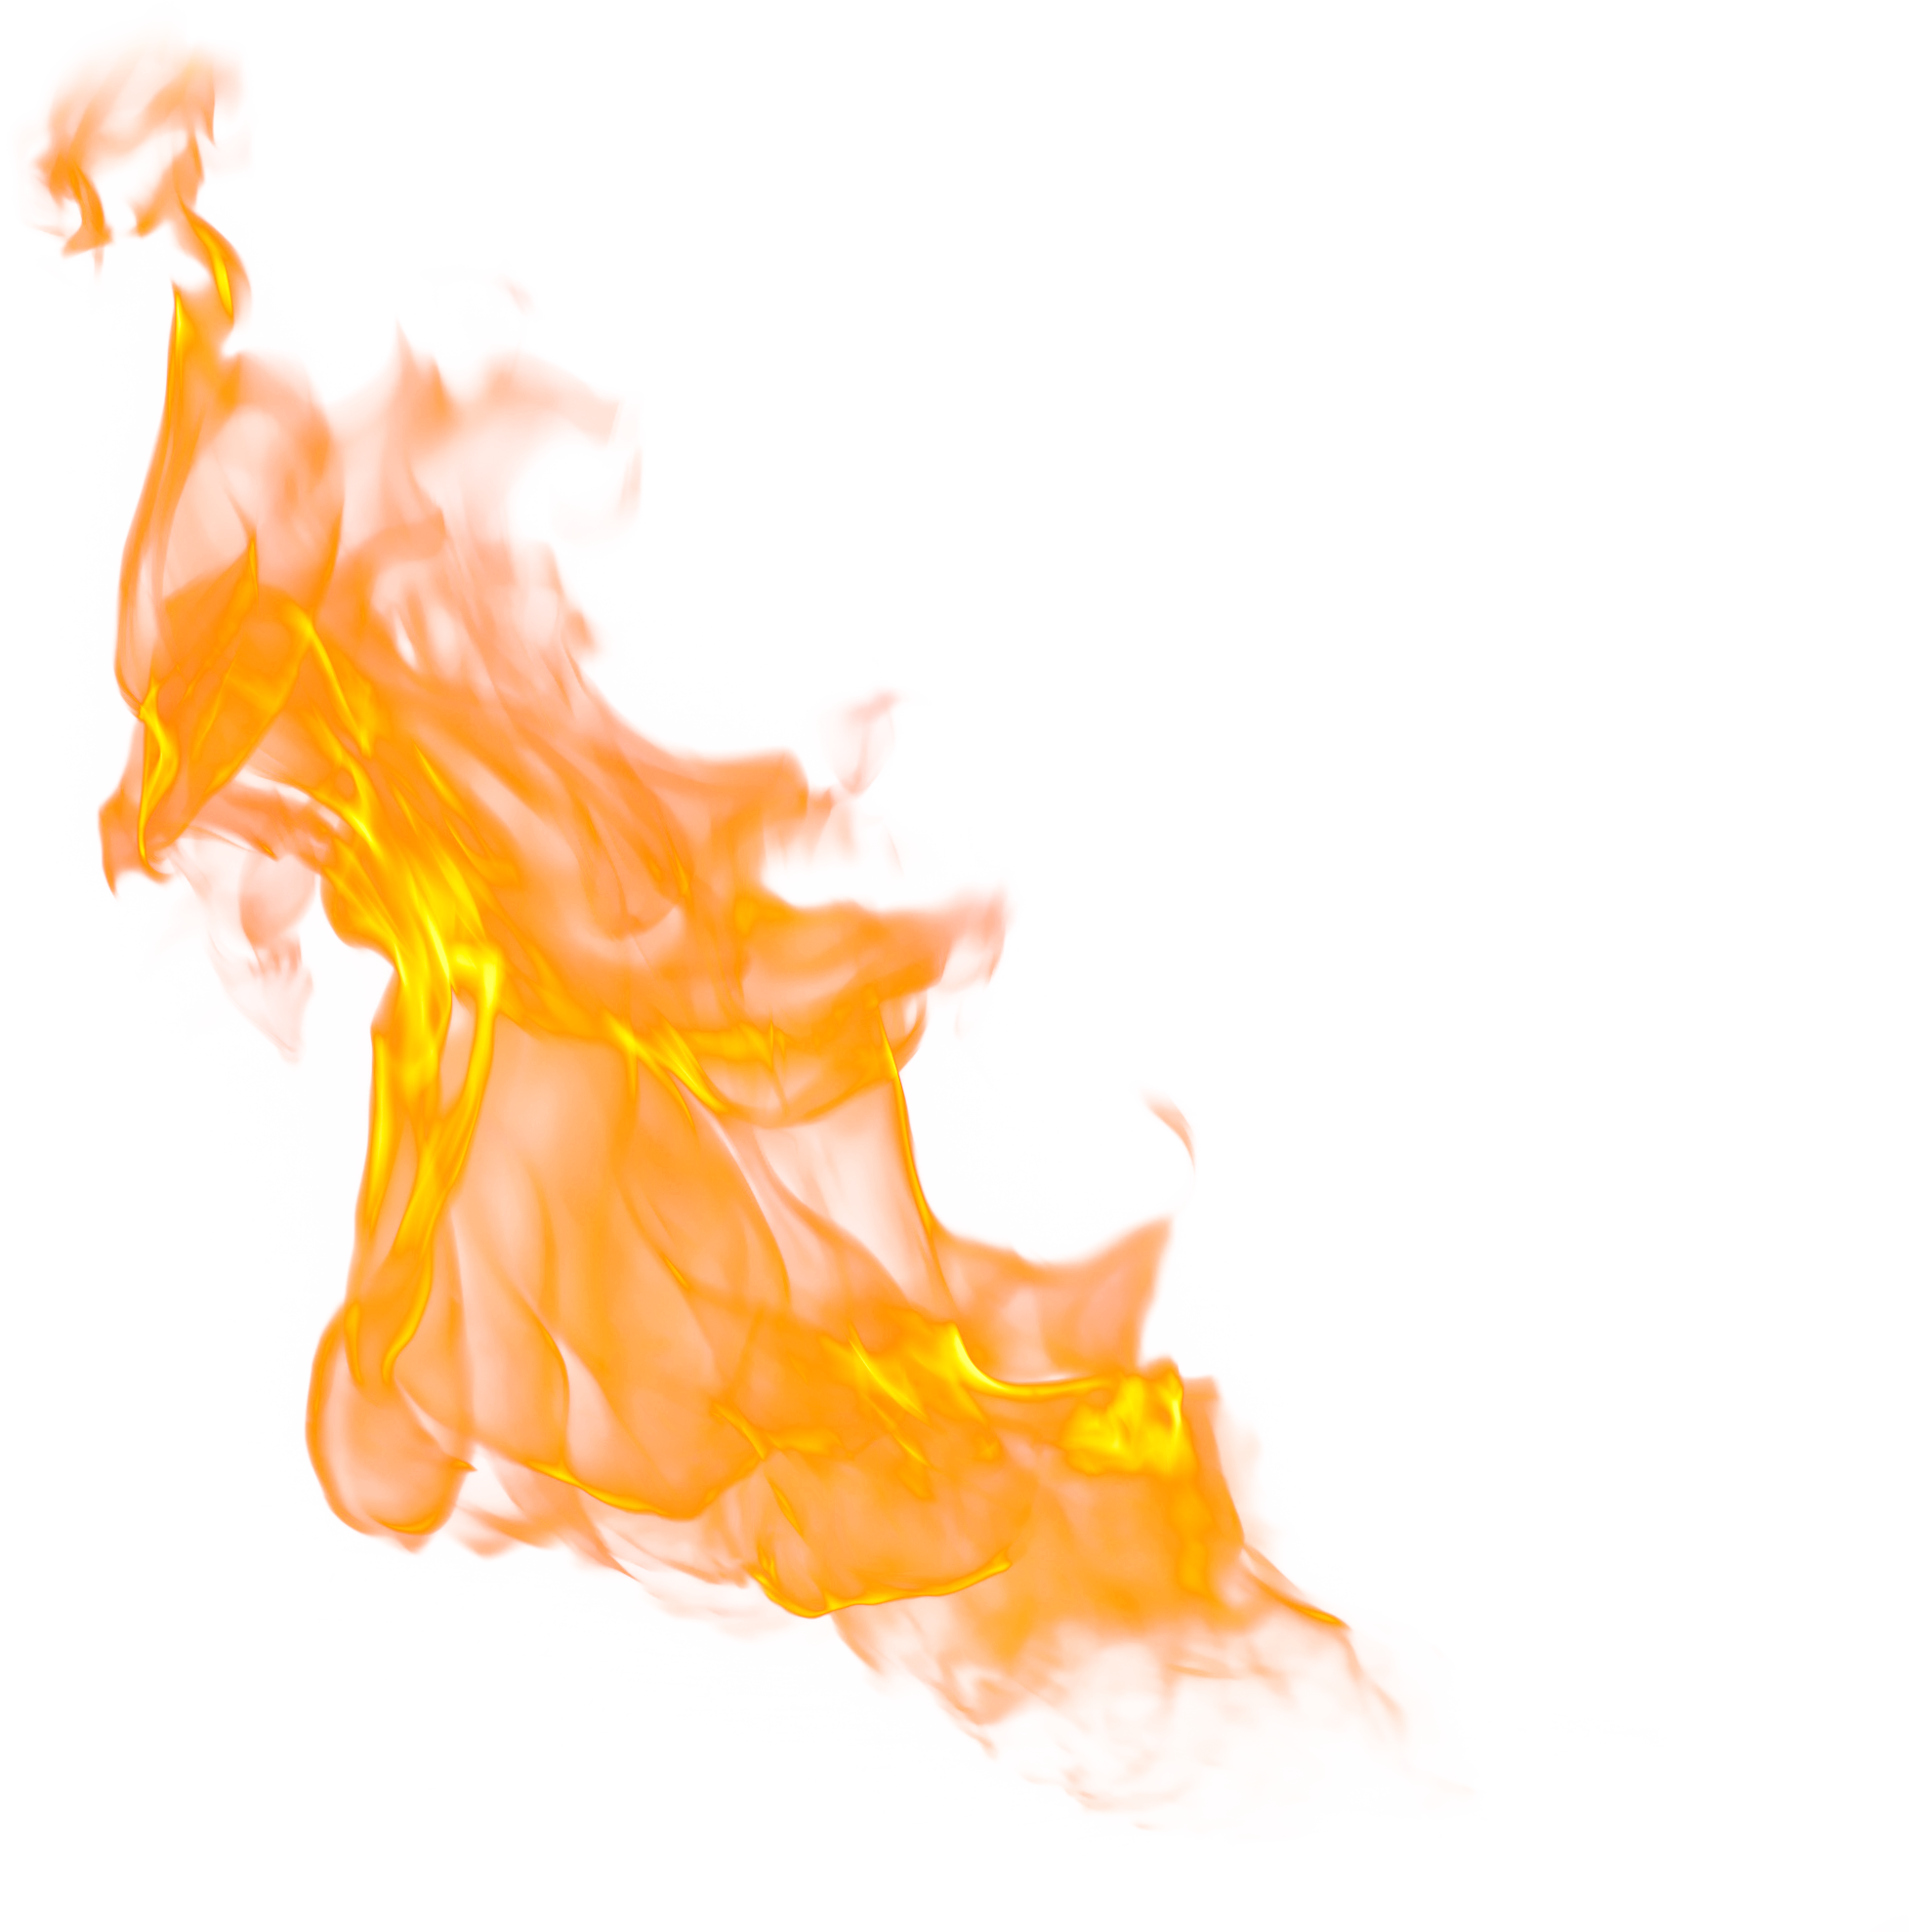 Fire Flame PNG Image.